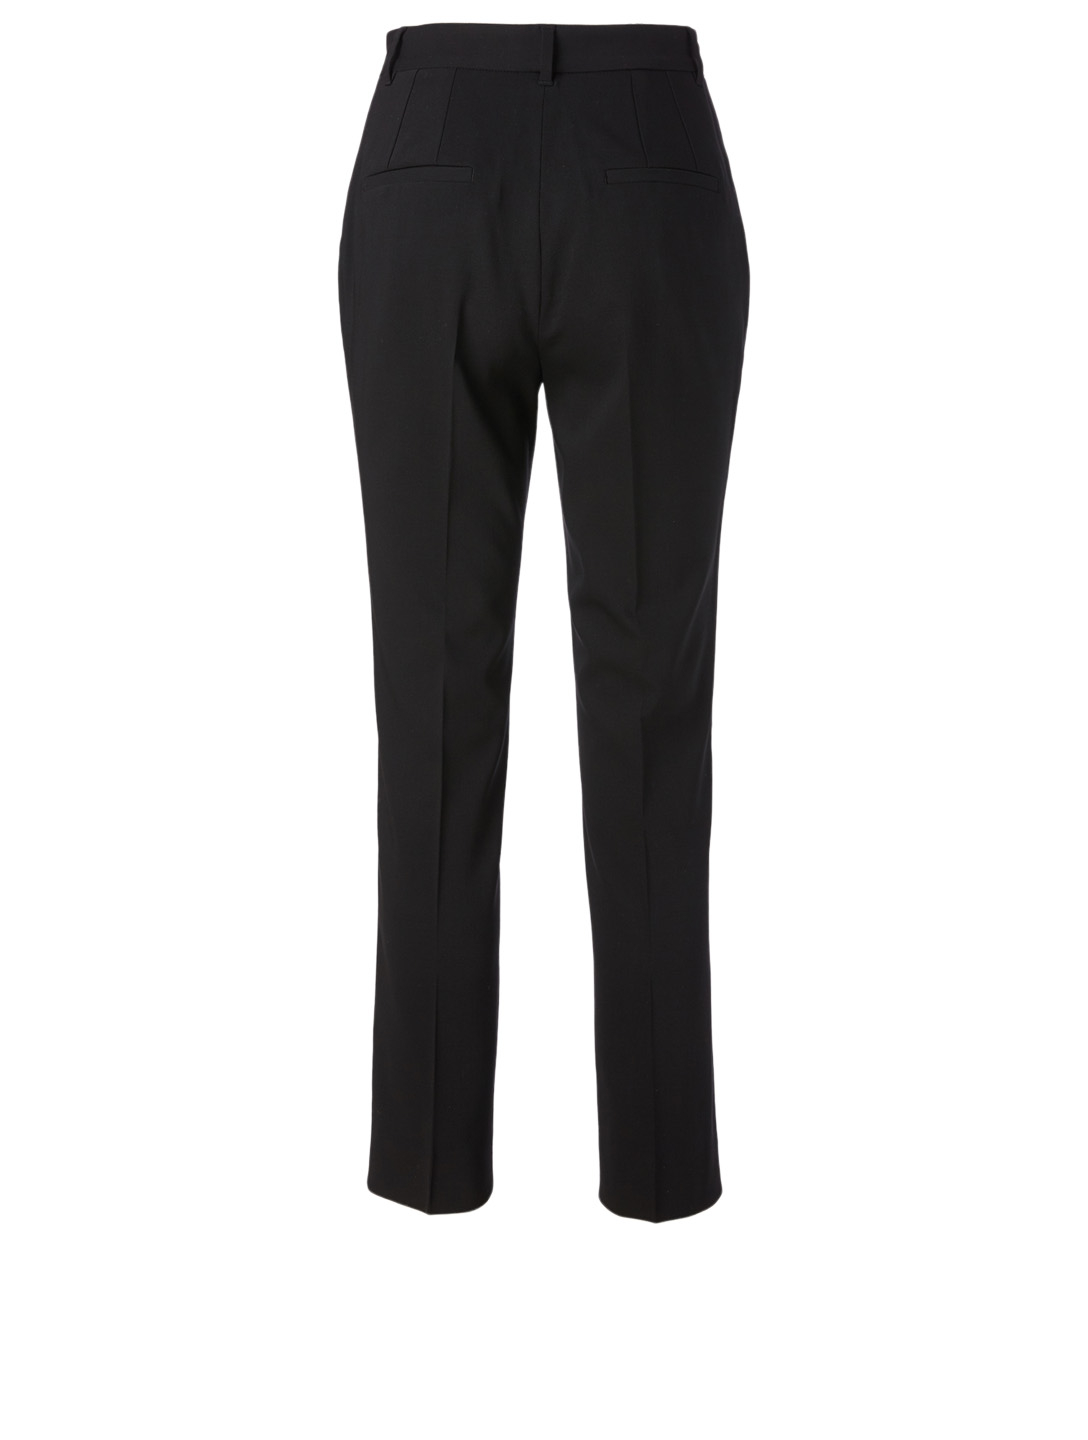 DOLCE & GABBANA Wool High-Waisted Pants Women's Black